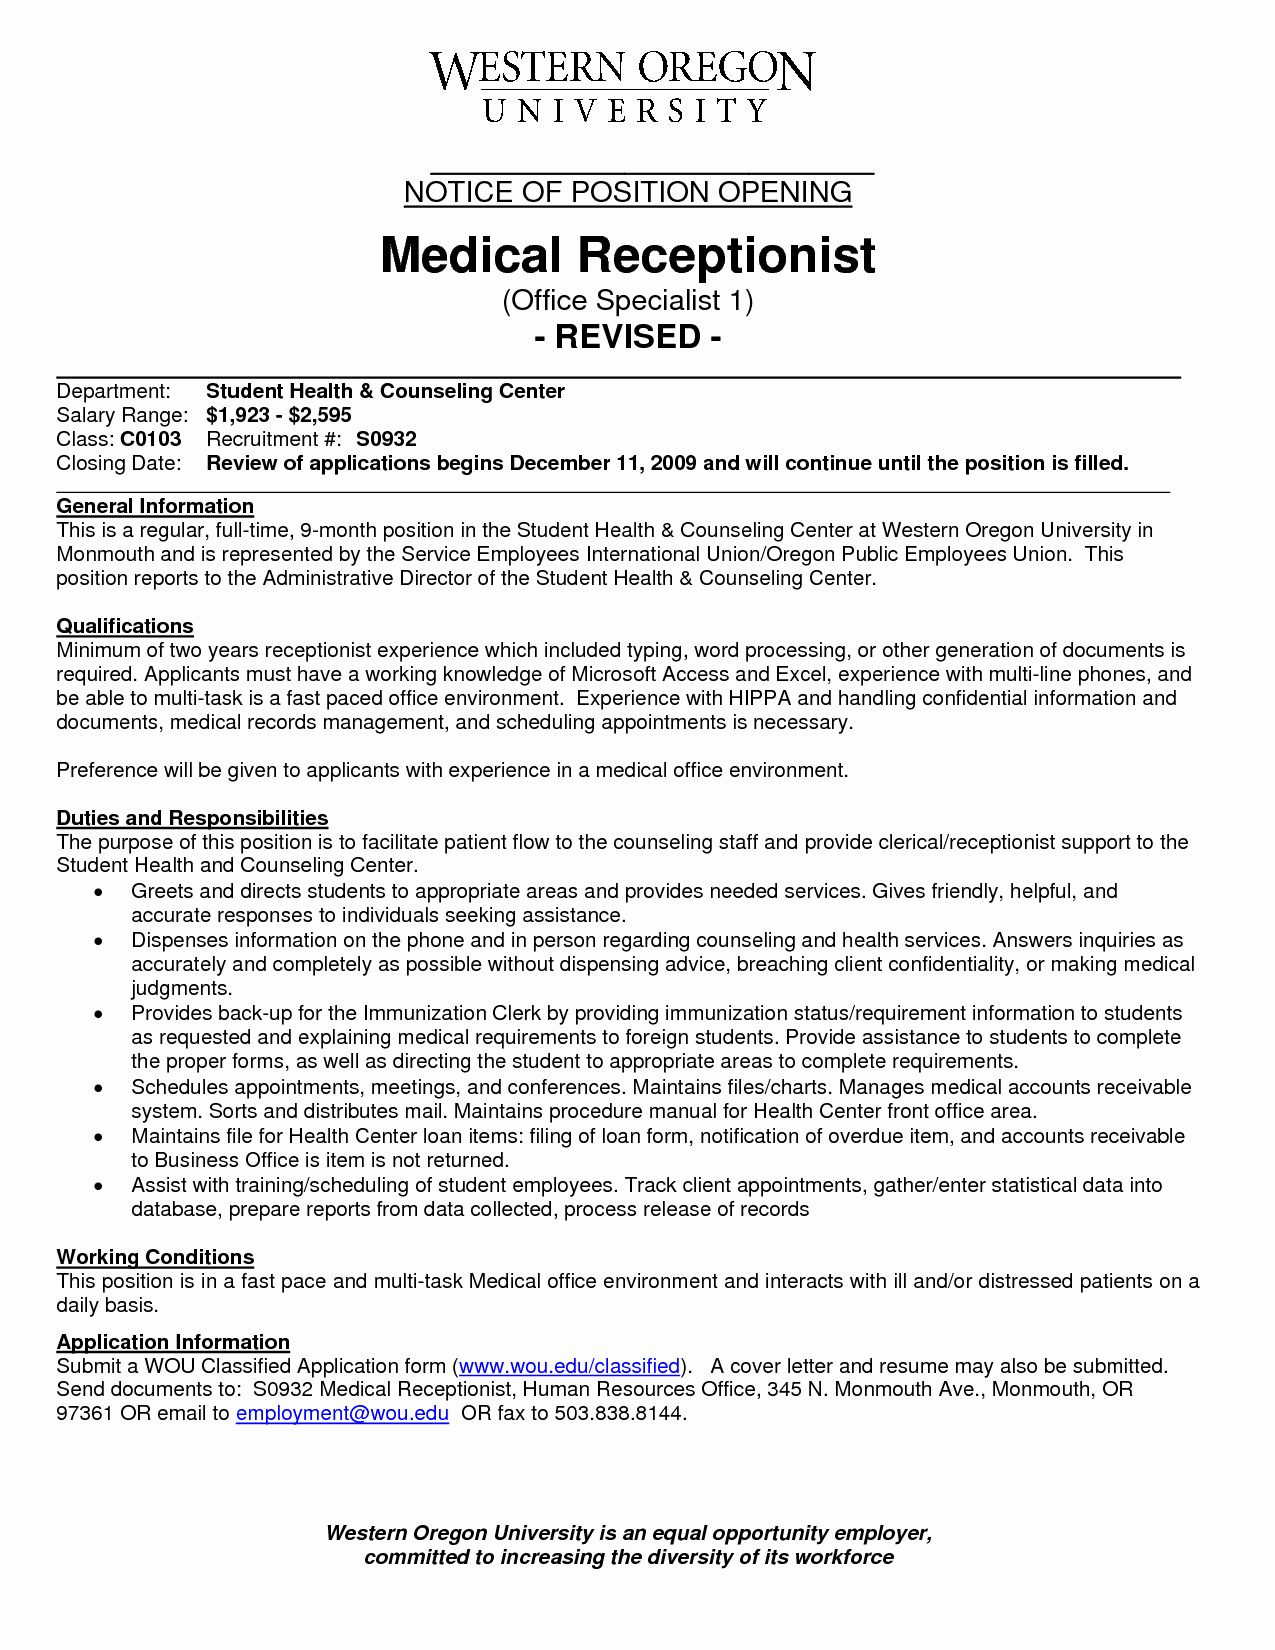 Front Desk Clerk Resume Fresh Medical Receptionist Resume With No Experience Medical Receptionist Receptionist Jobs Medical Resume